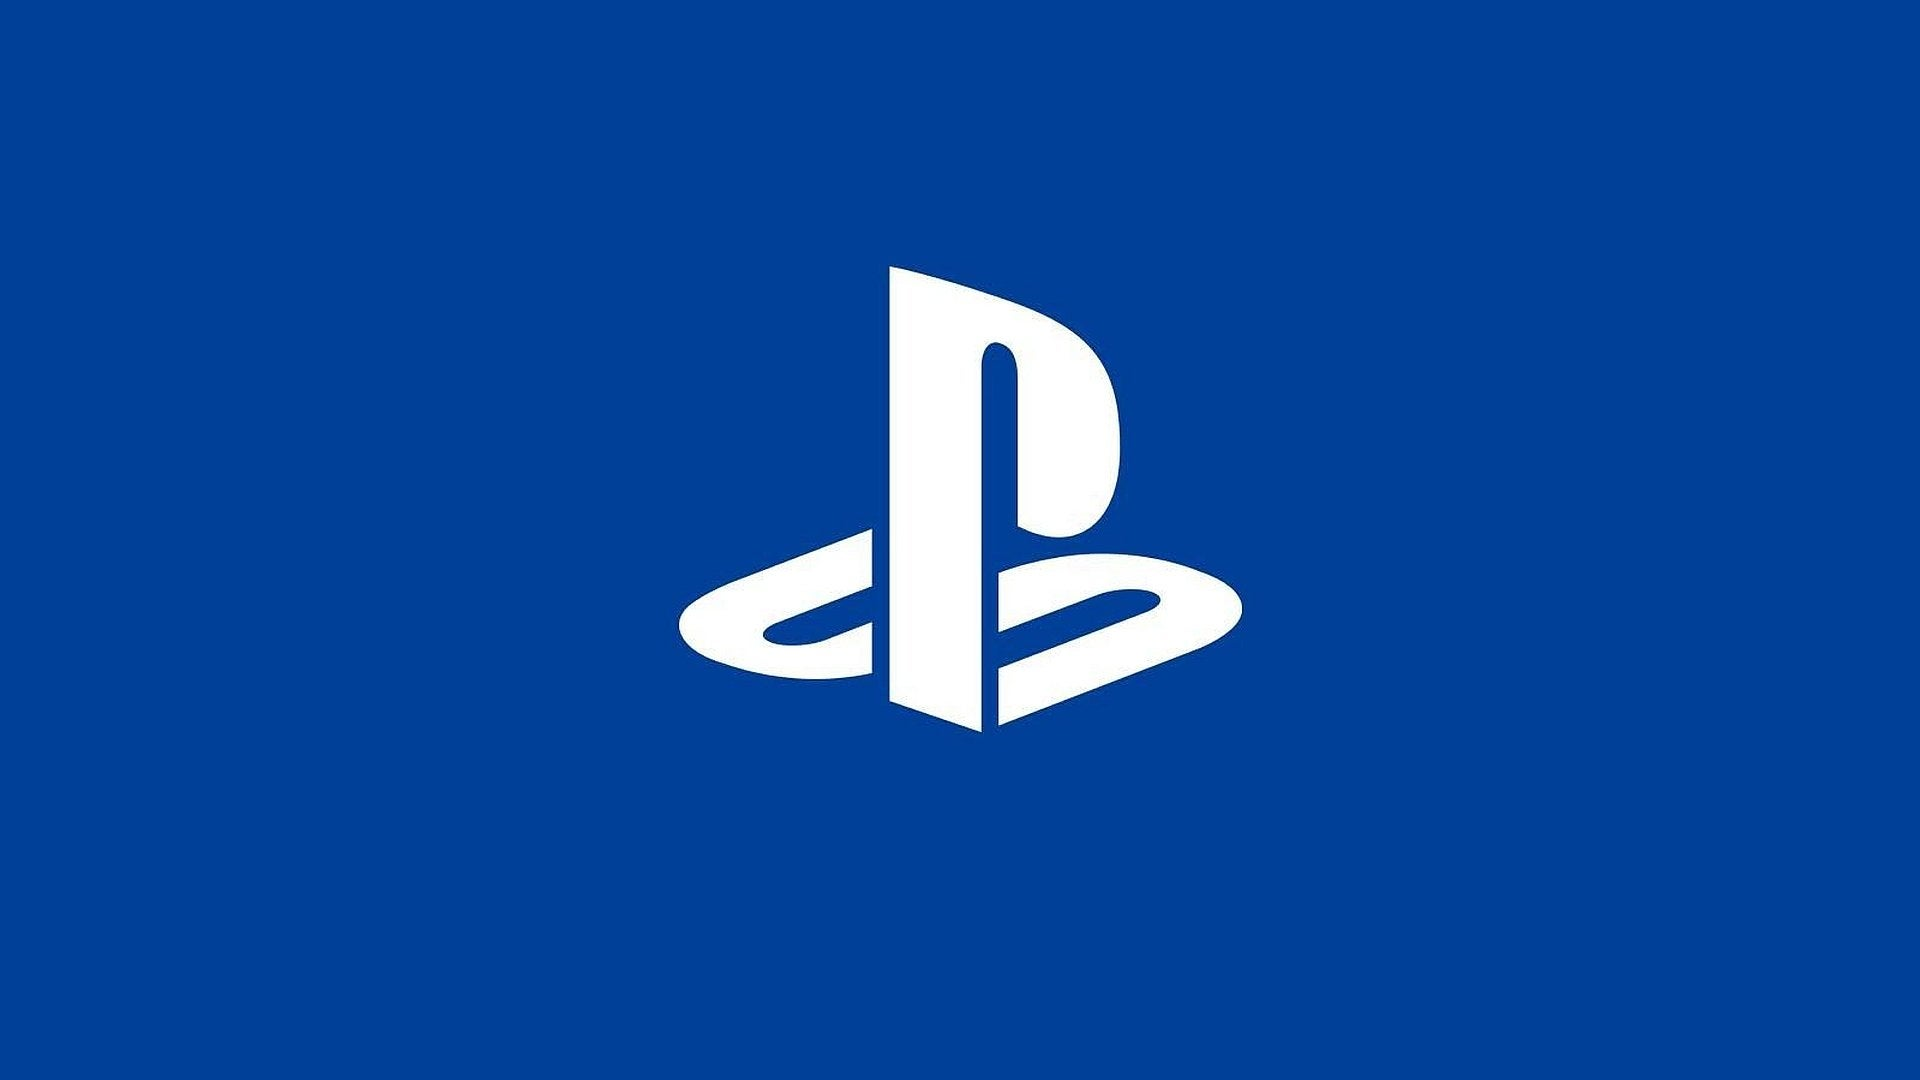 This leak could be our first glimpse at the PS5's user interface